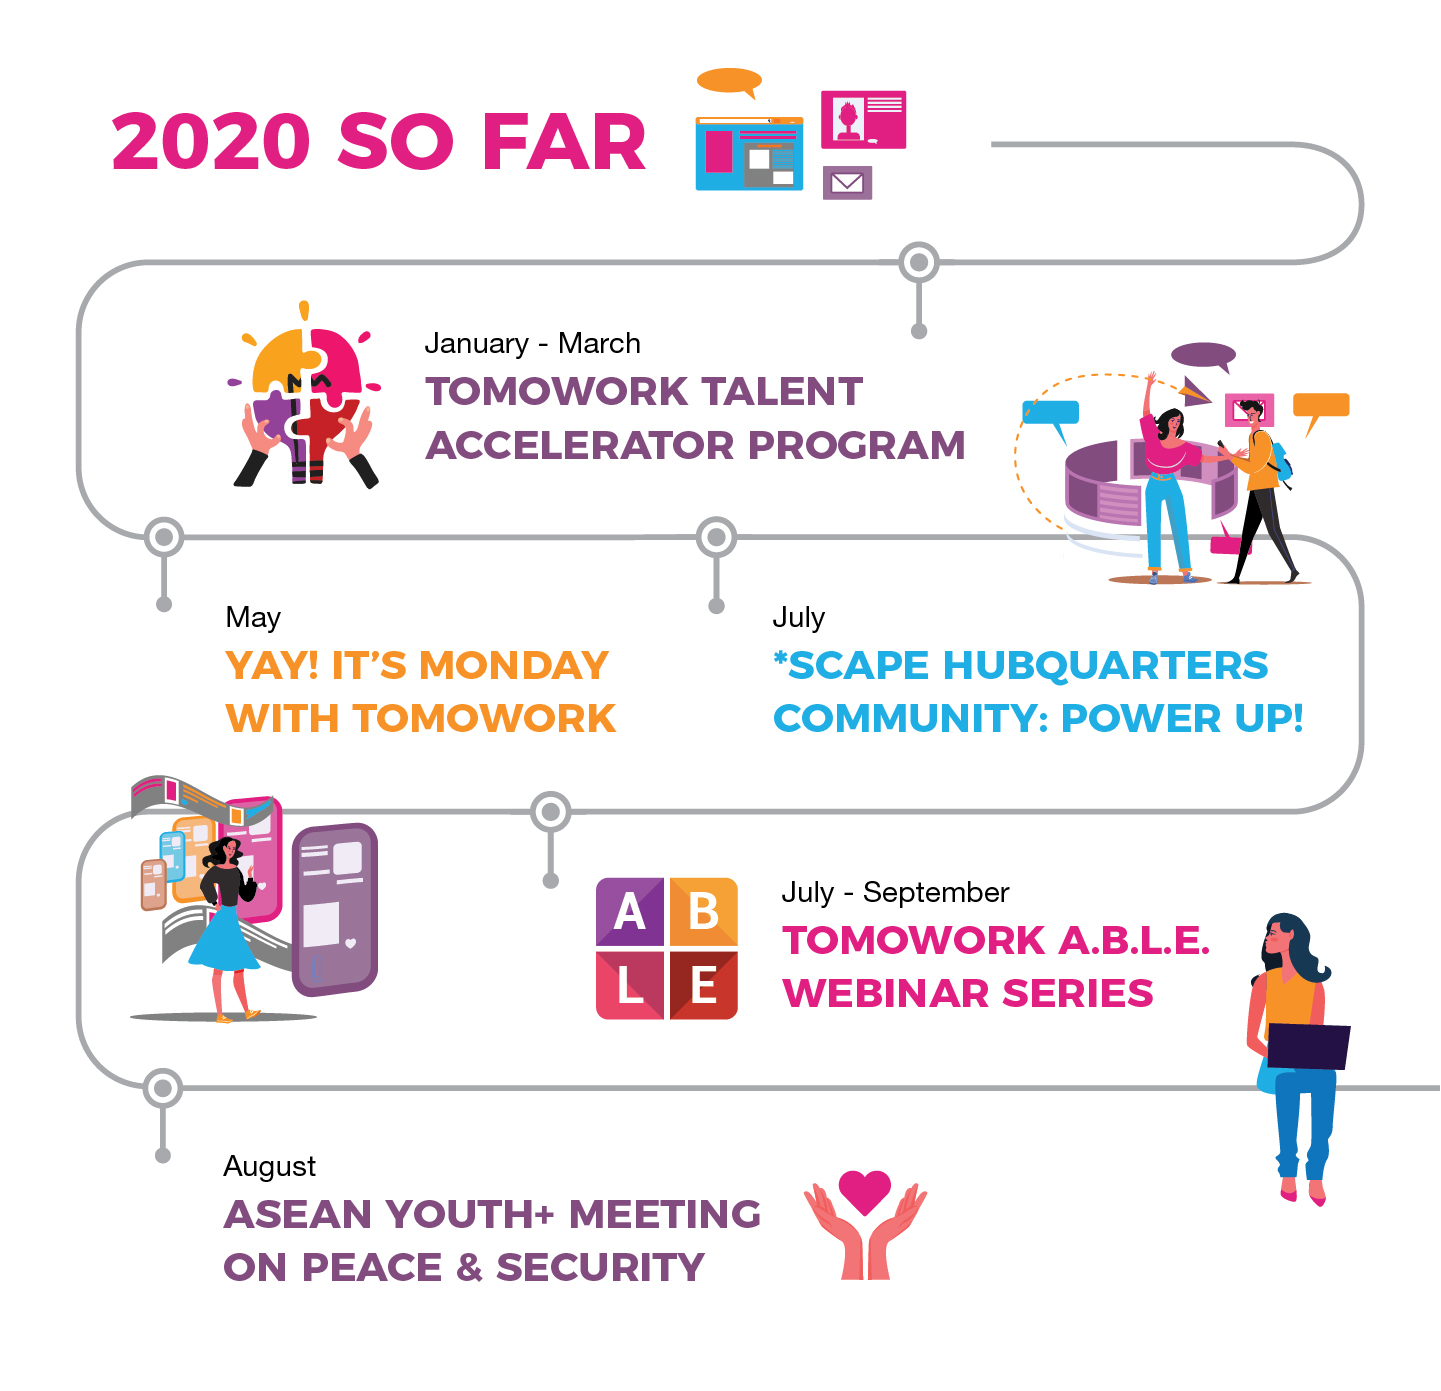 Image with text that says 'Our 2020 so far' in pink Shows a timeline of the work done up to September January - March: TomoWork Talent Accelerator Program (in purple) May: YAY! It's Monday with TomoWork (in orange) July: *SCAPE HubQuarter Community Power Up! (in blue) July - September: TomoWork A.B.L.E Webinar Series (in pink) August: ASEAN Youth+ Meeting on Peace & Security (in purple)